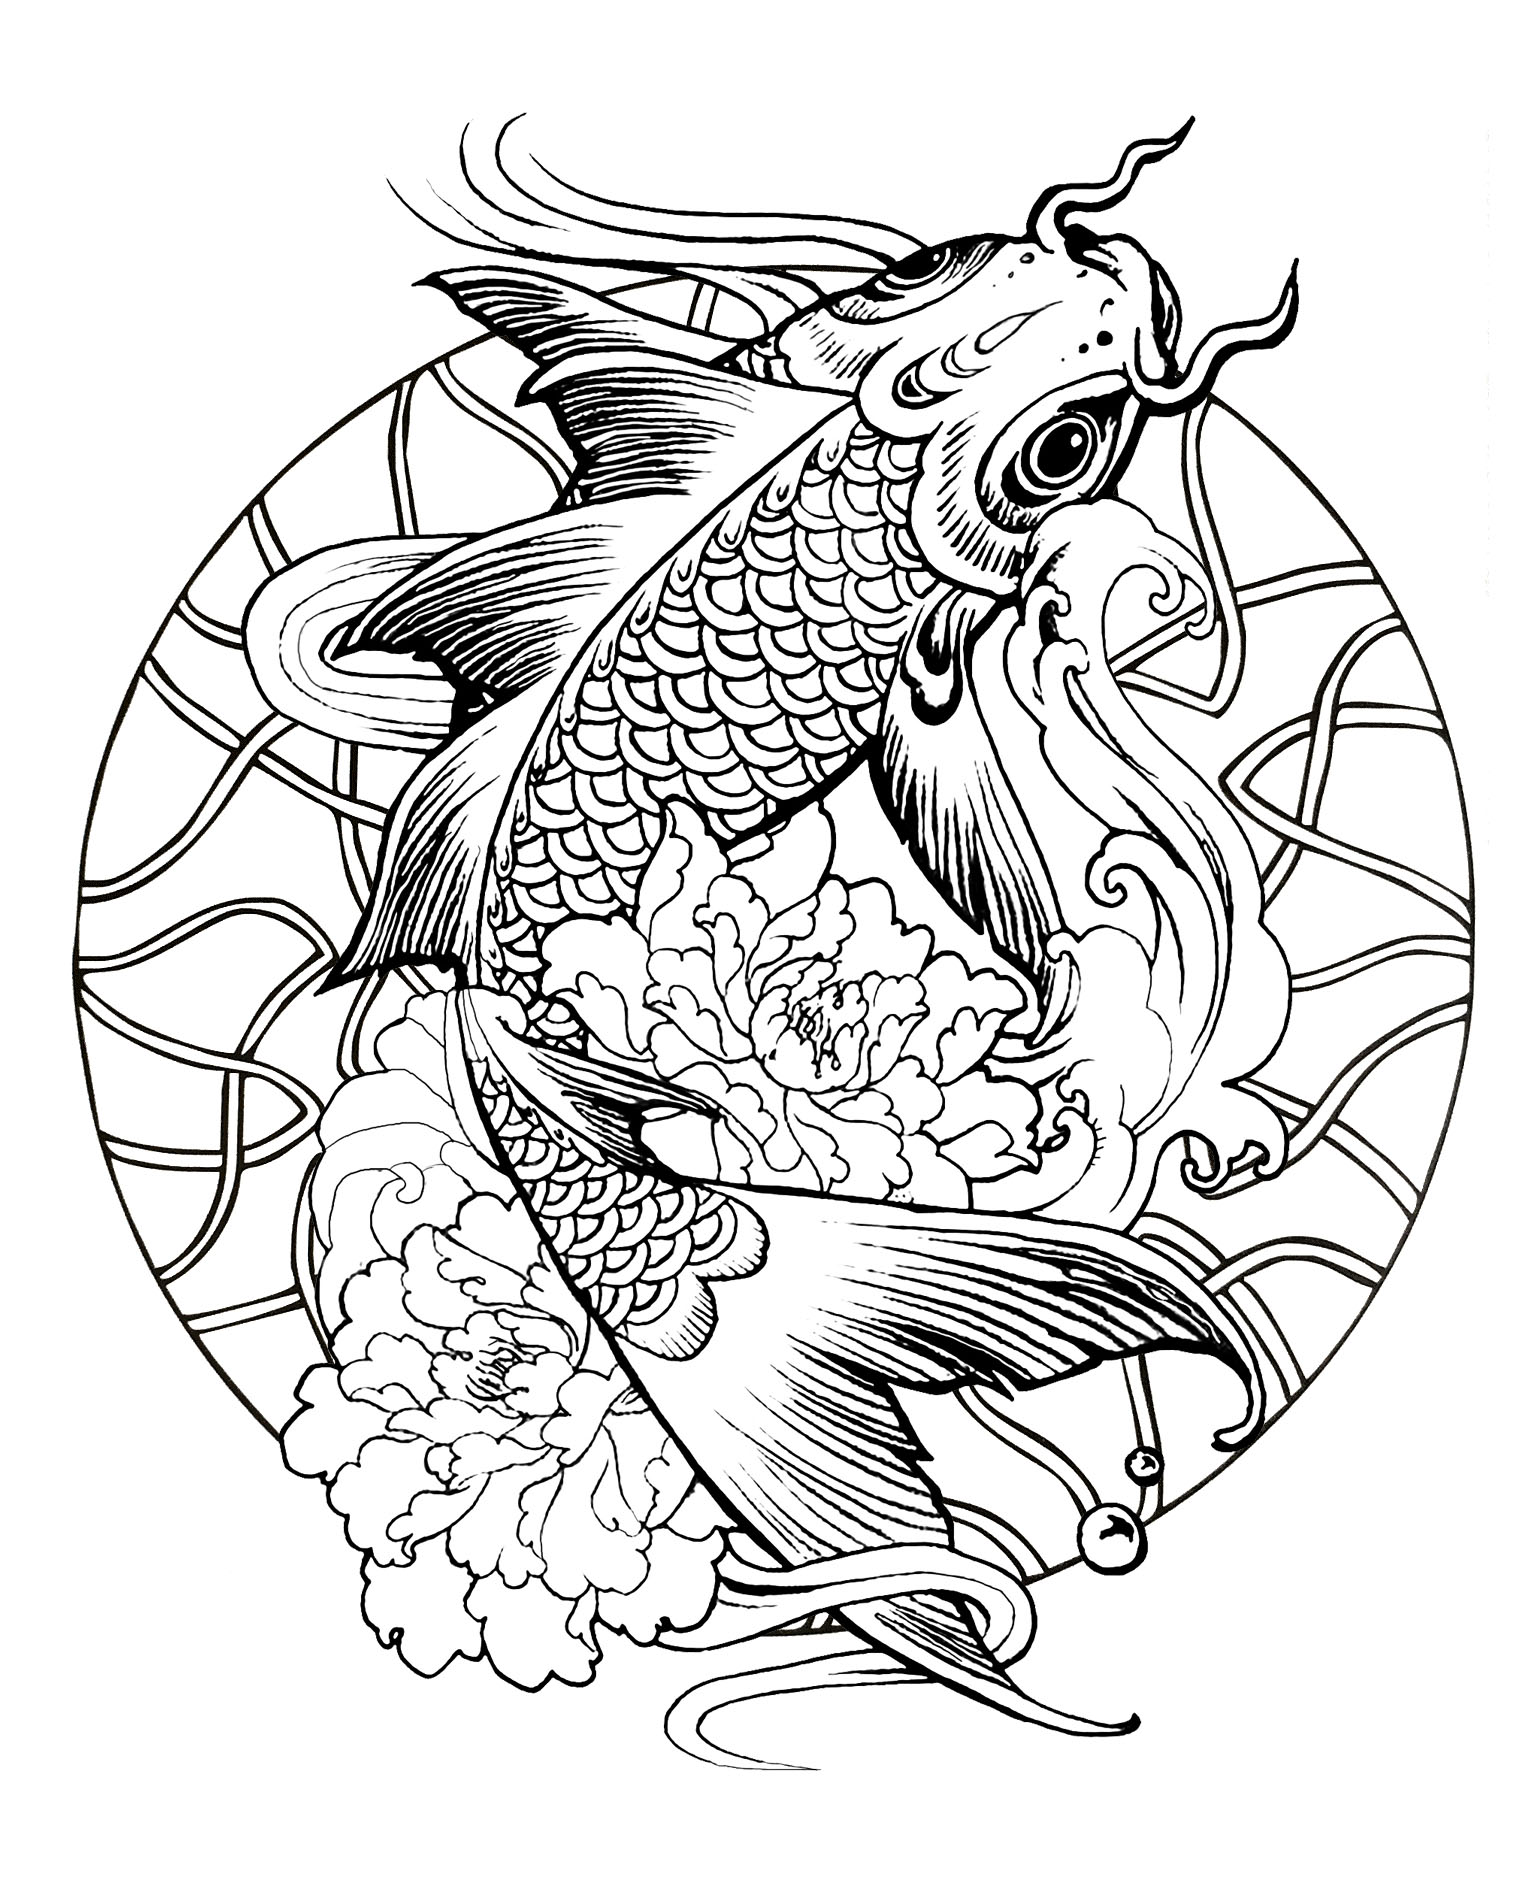 Mandala fish carp - M&alas Adult Coloring Pages